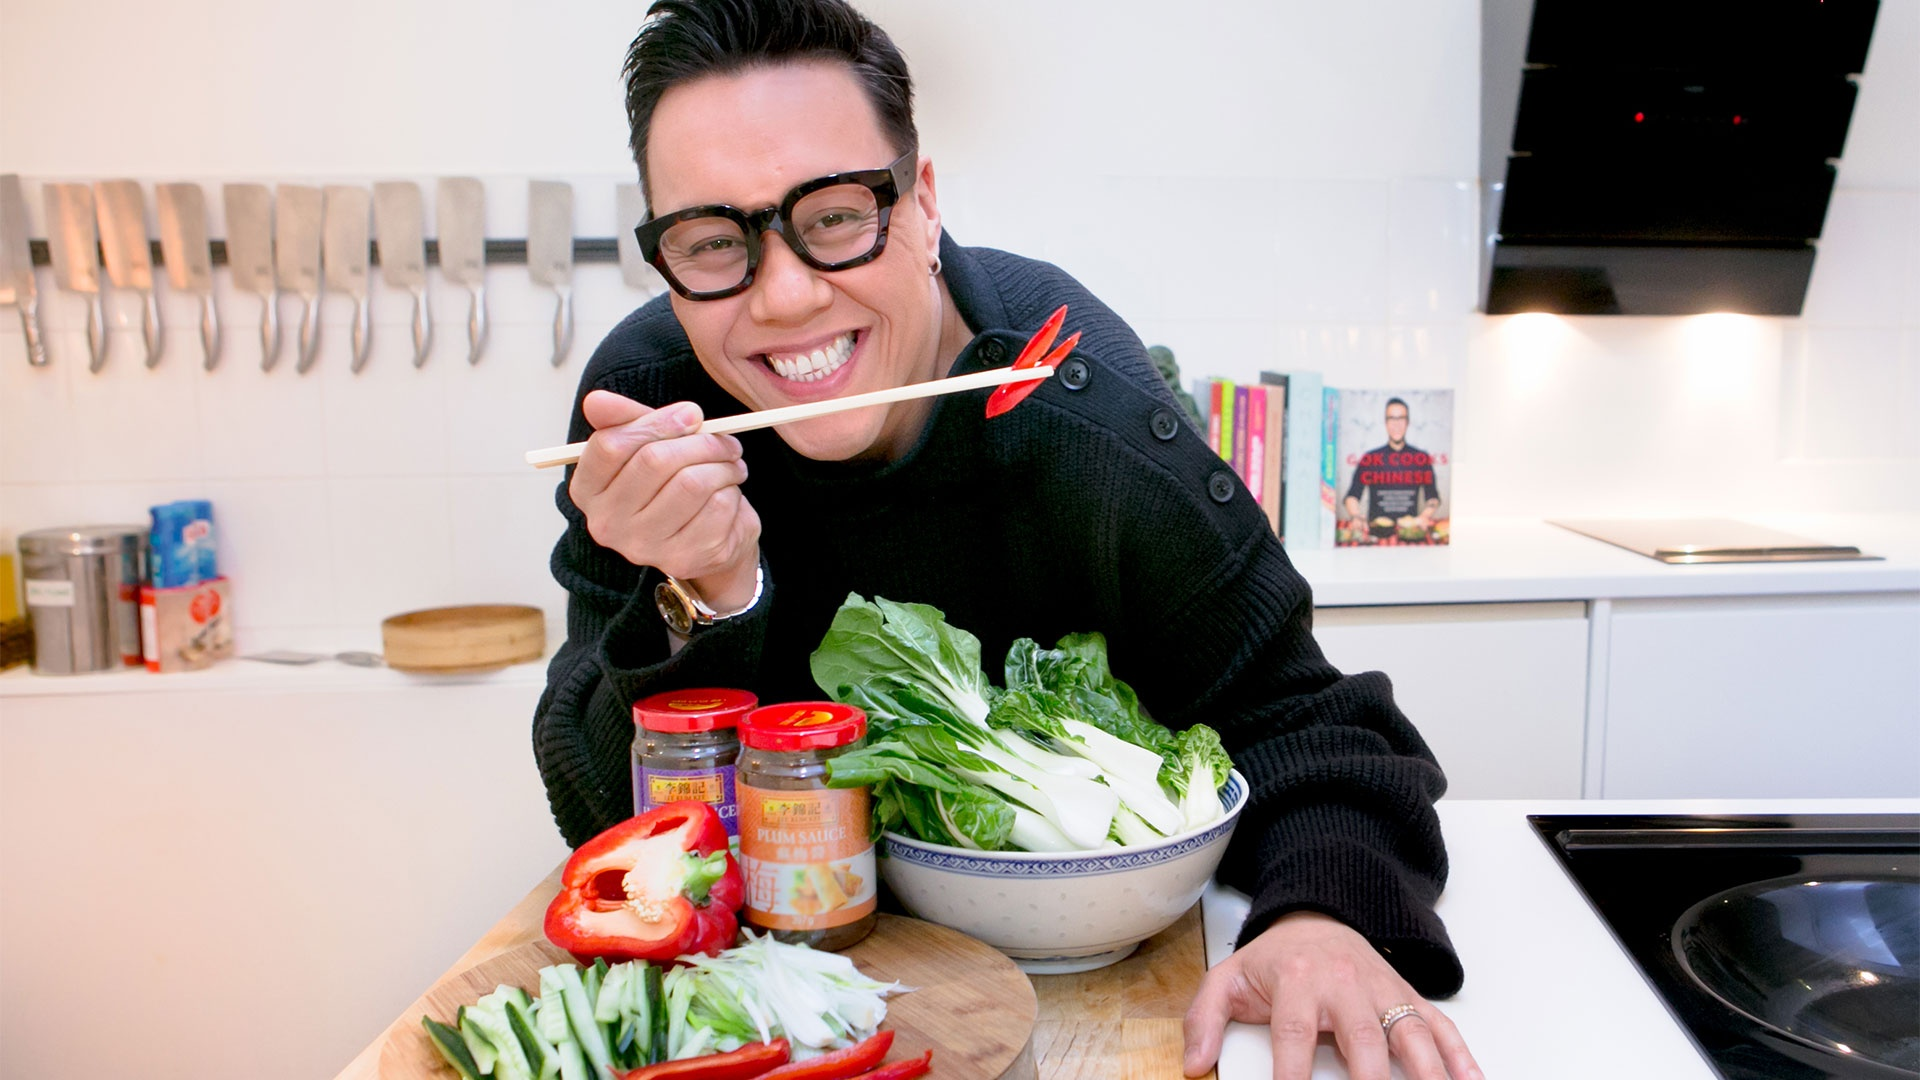 Gok Wan pictured at Jeremy Pang's School of Wok